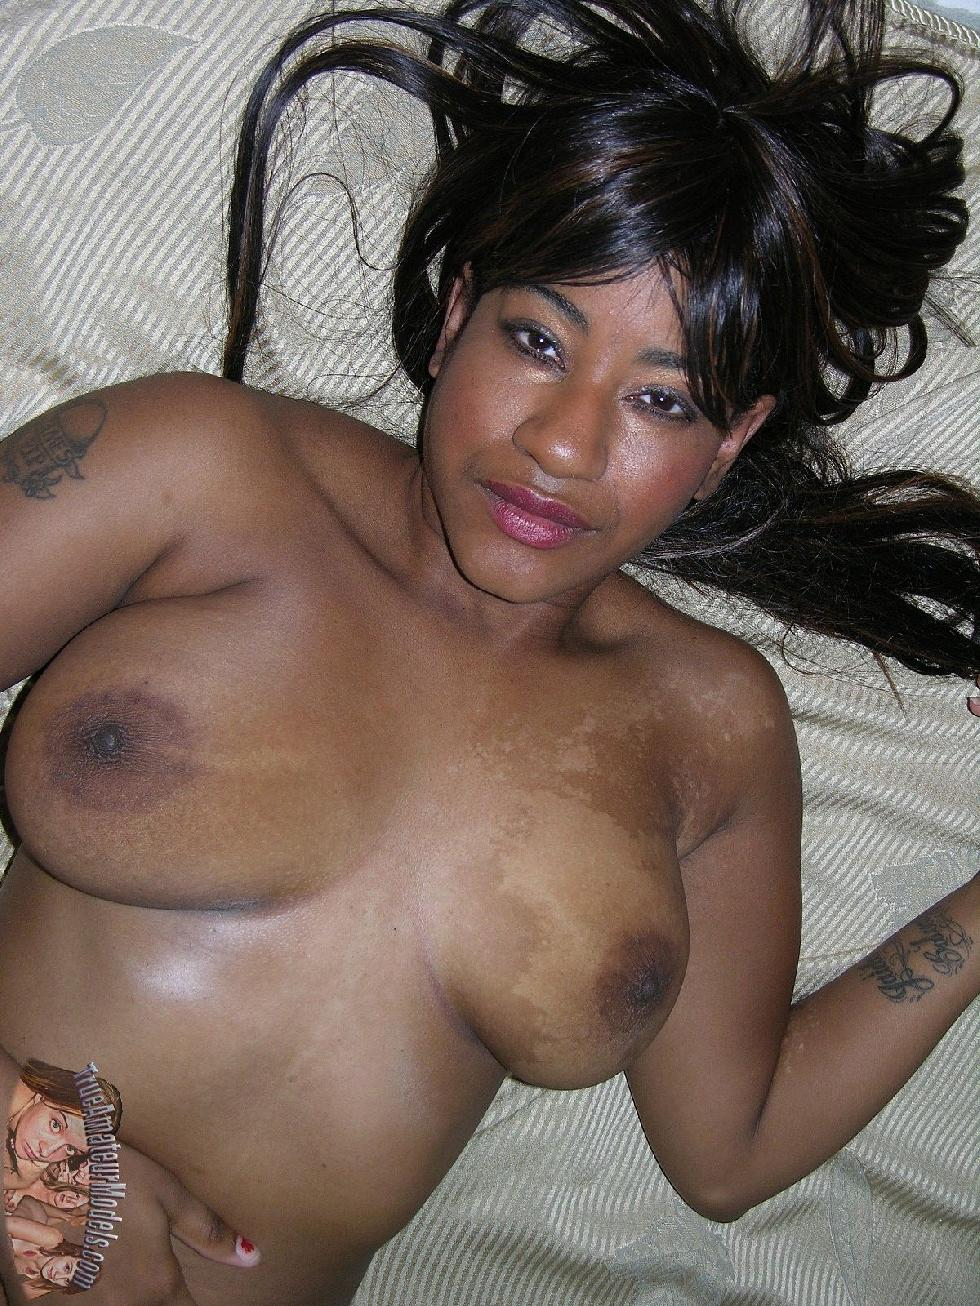 Busty ebony with tattoo - Kendra - 9